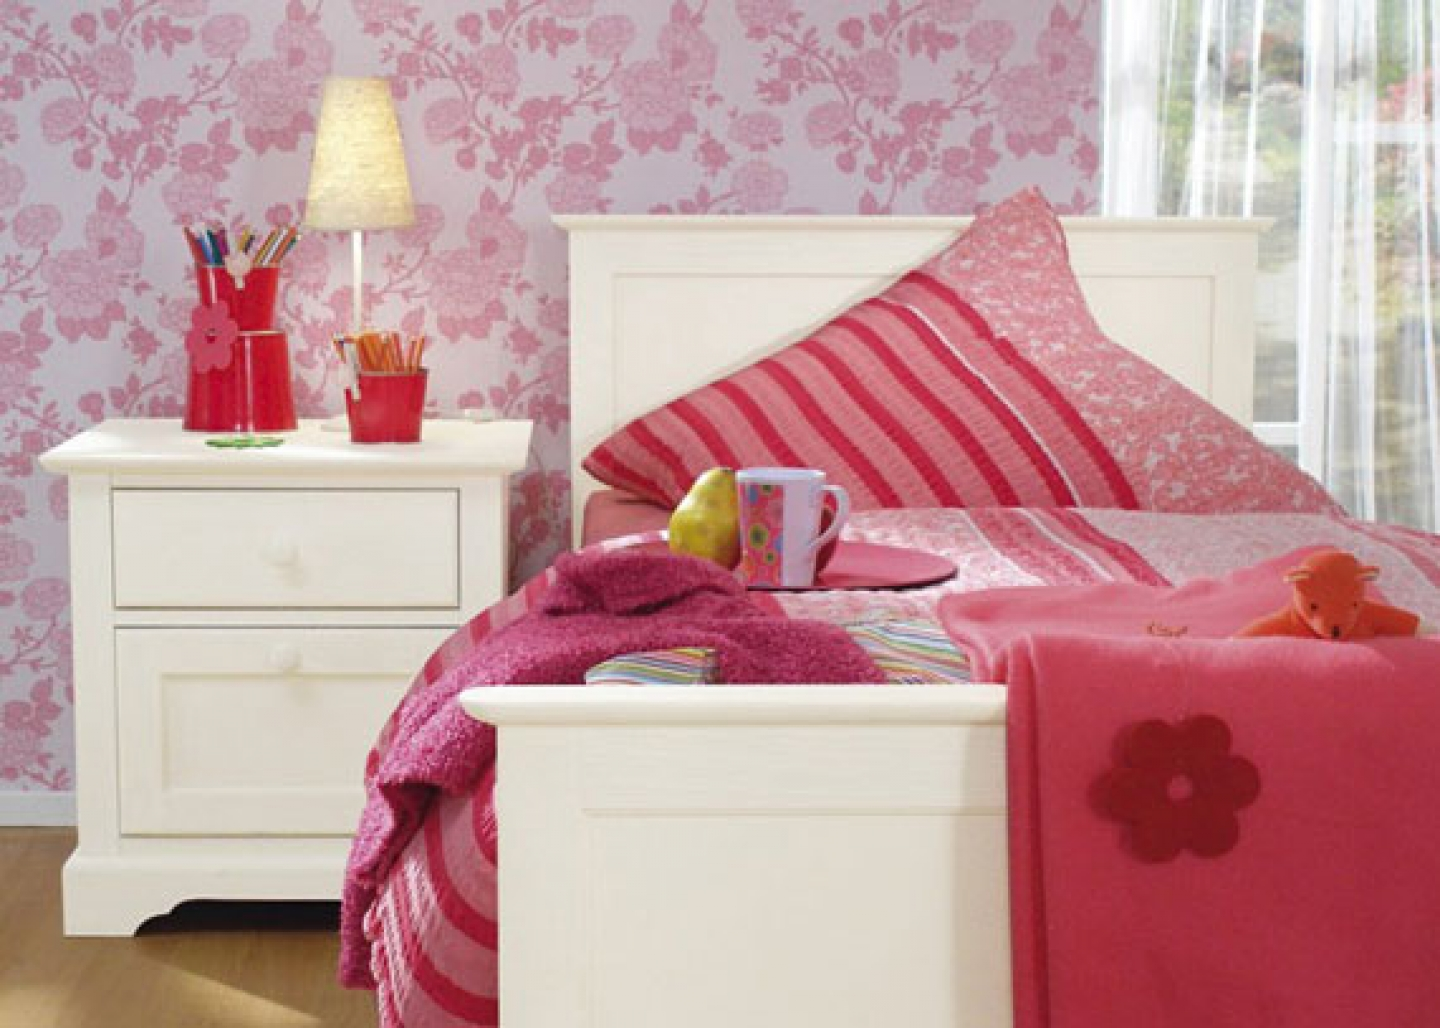 bed bedroom bedroom design flower wallpaper girl bedroom design girls 1440x1028